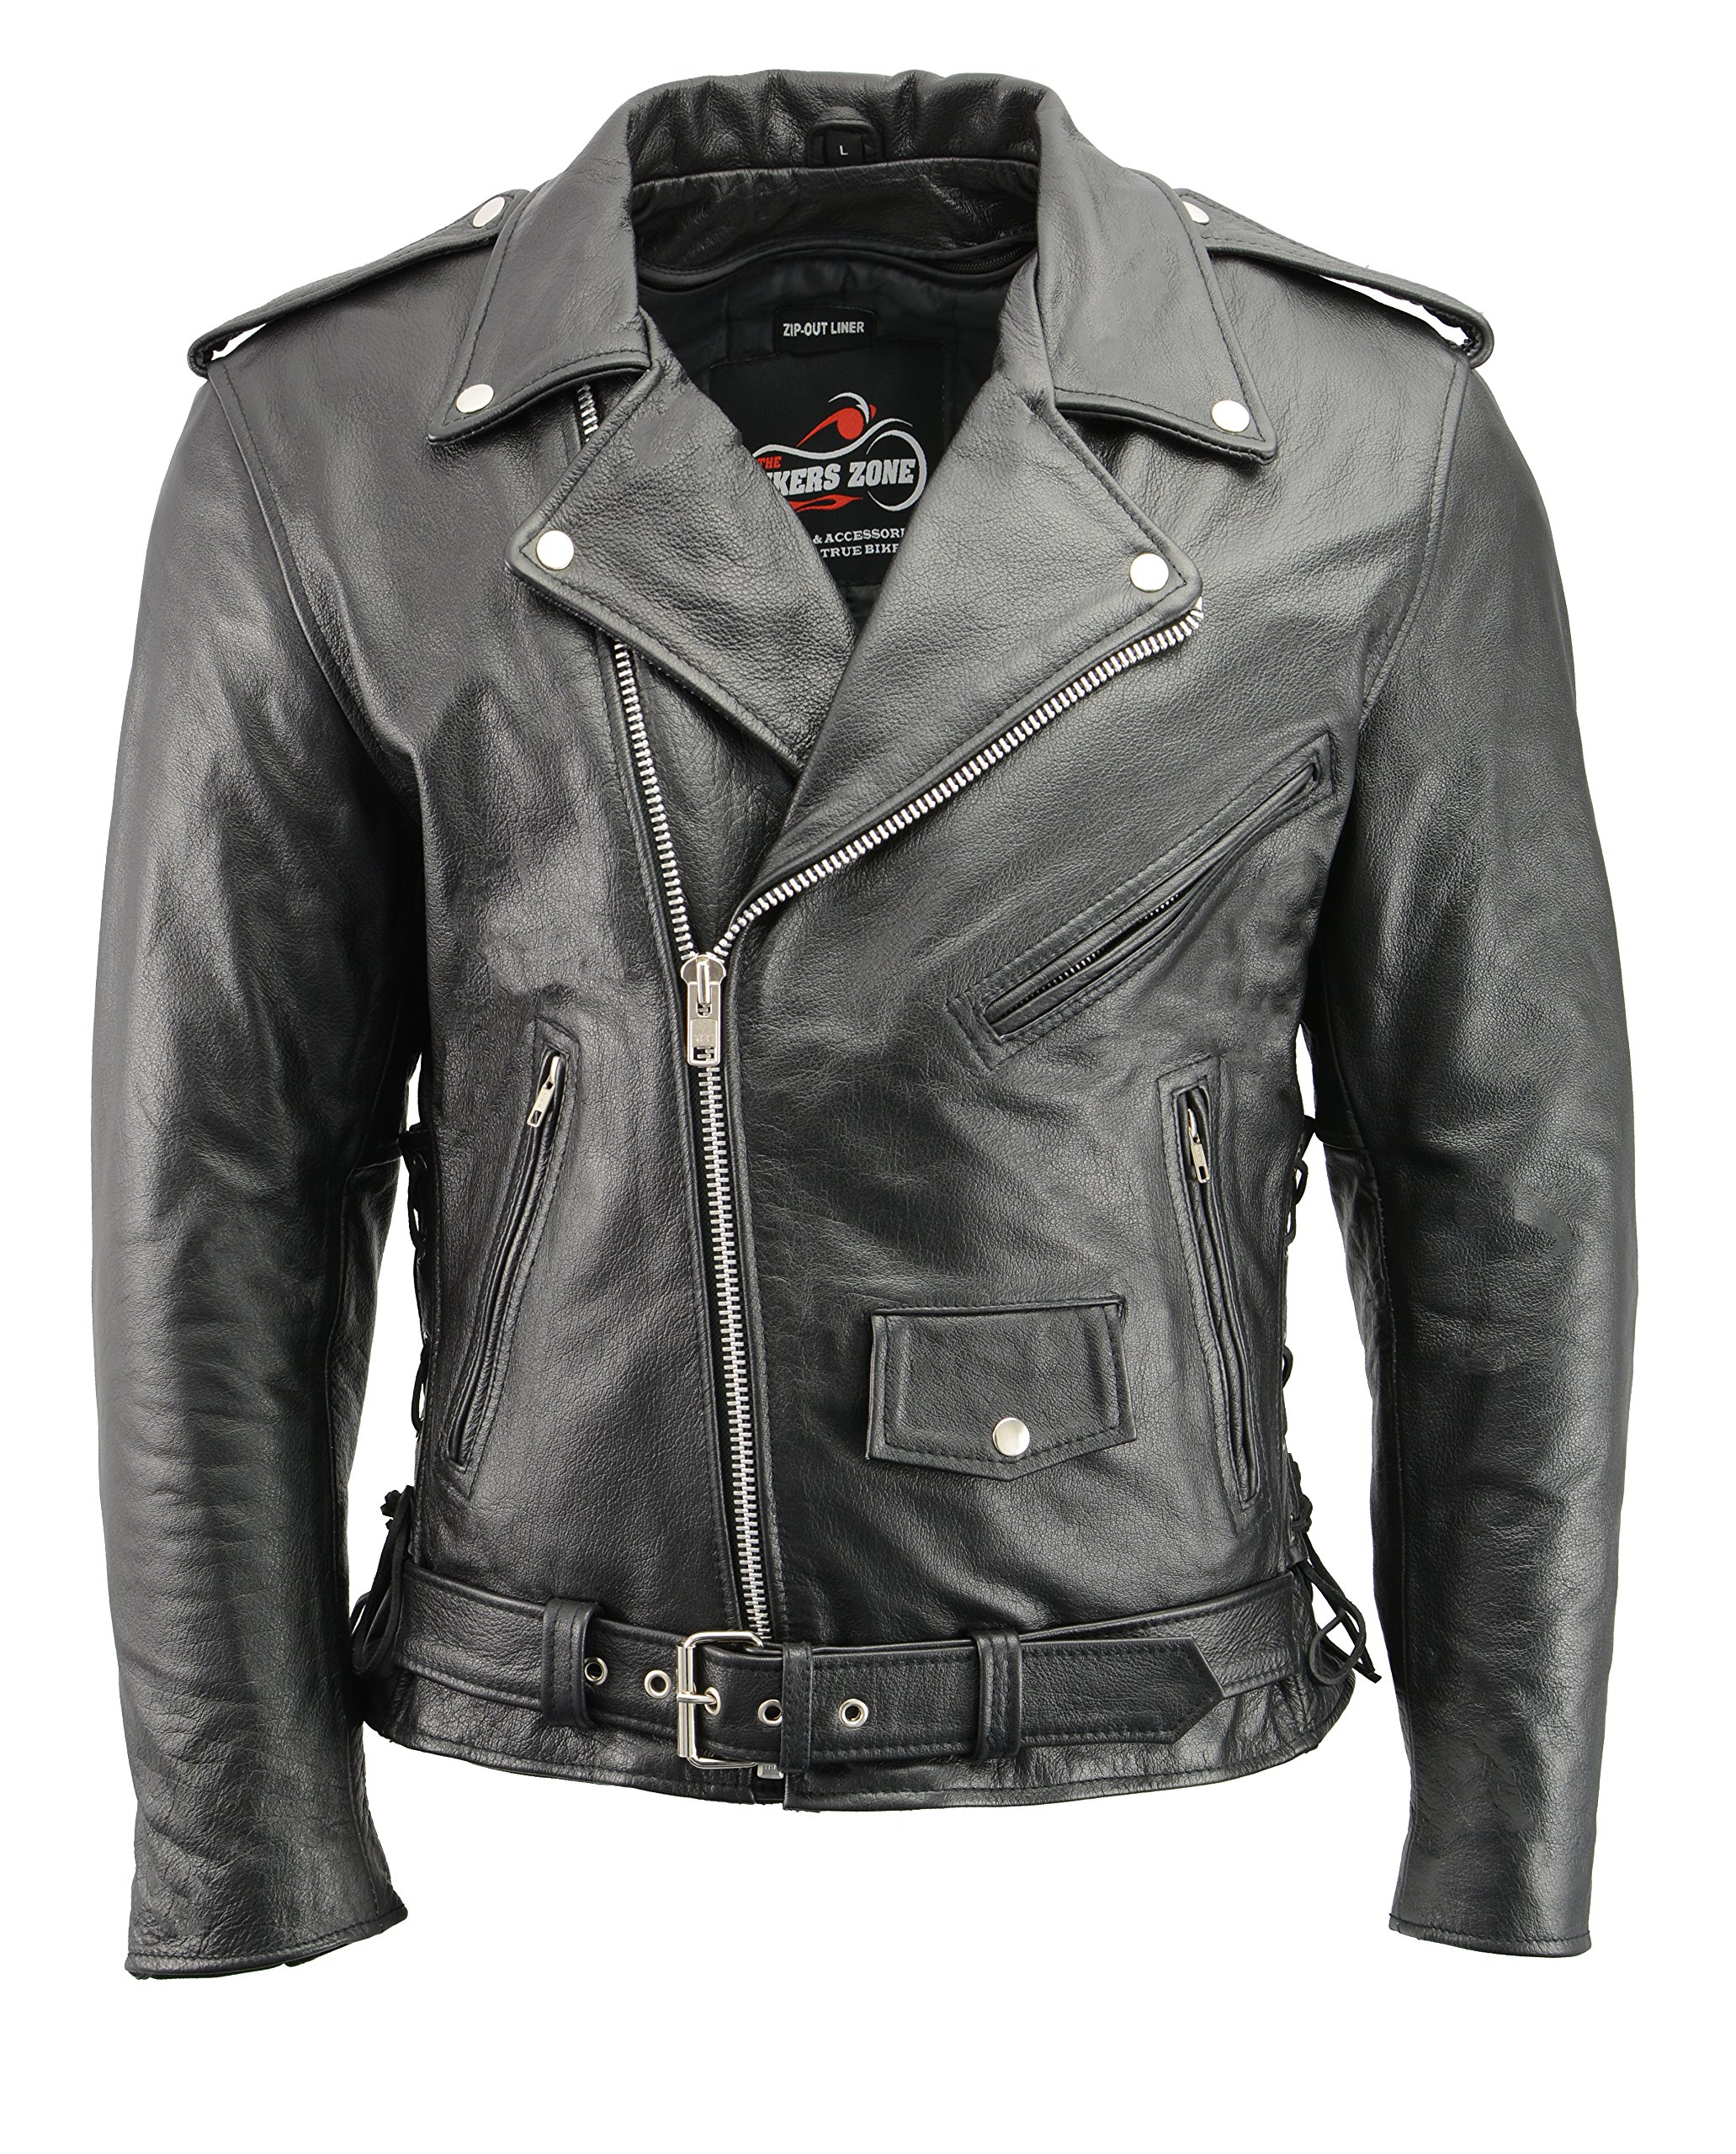 Men's Leather Motorcycle Jacket with CE Certified Armor | Premium Natural Buffalo Leather | 2 Concealed Carry Gun Pockets | Adjustable Side Lace Biker Jacket with Patch Access Lining (Black, 6XL)